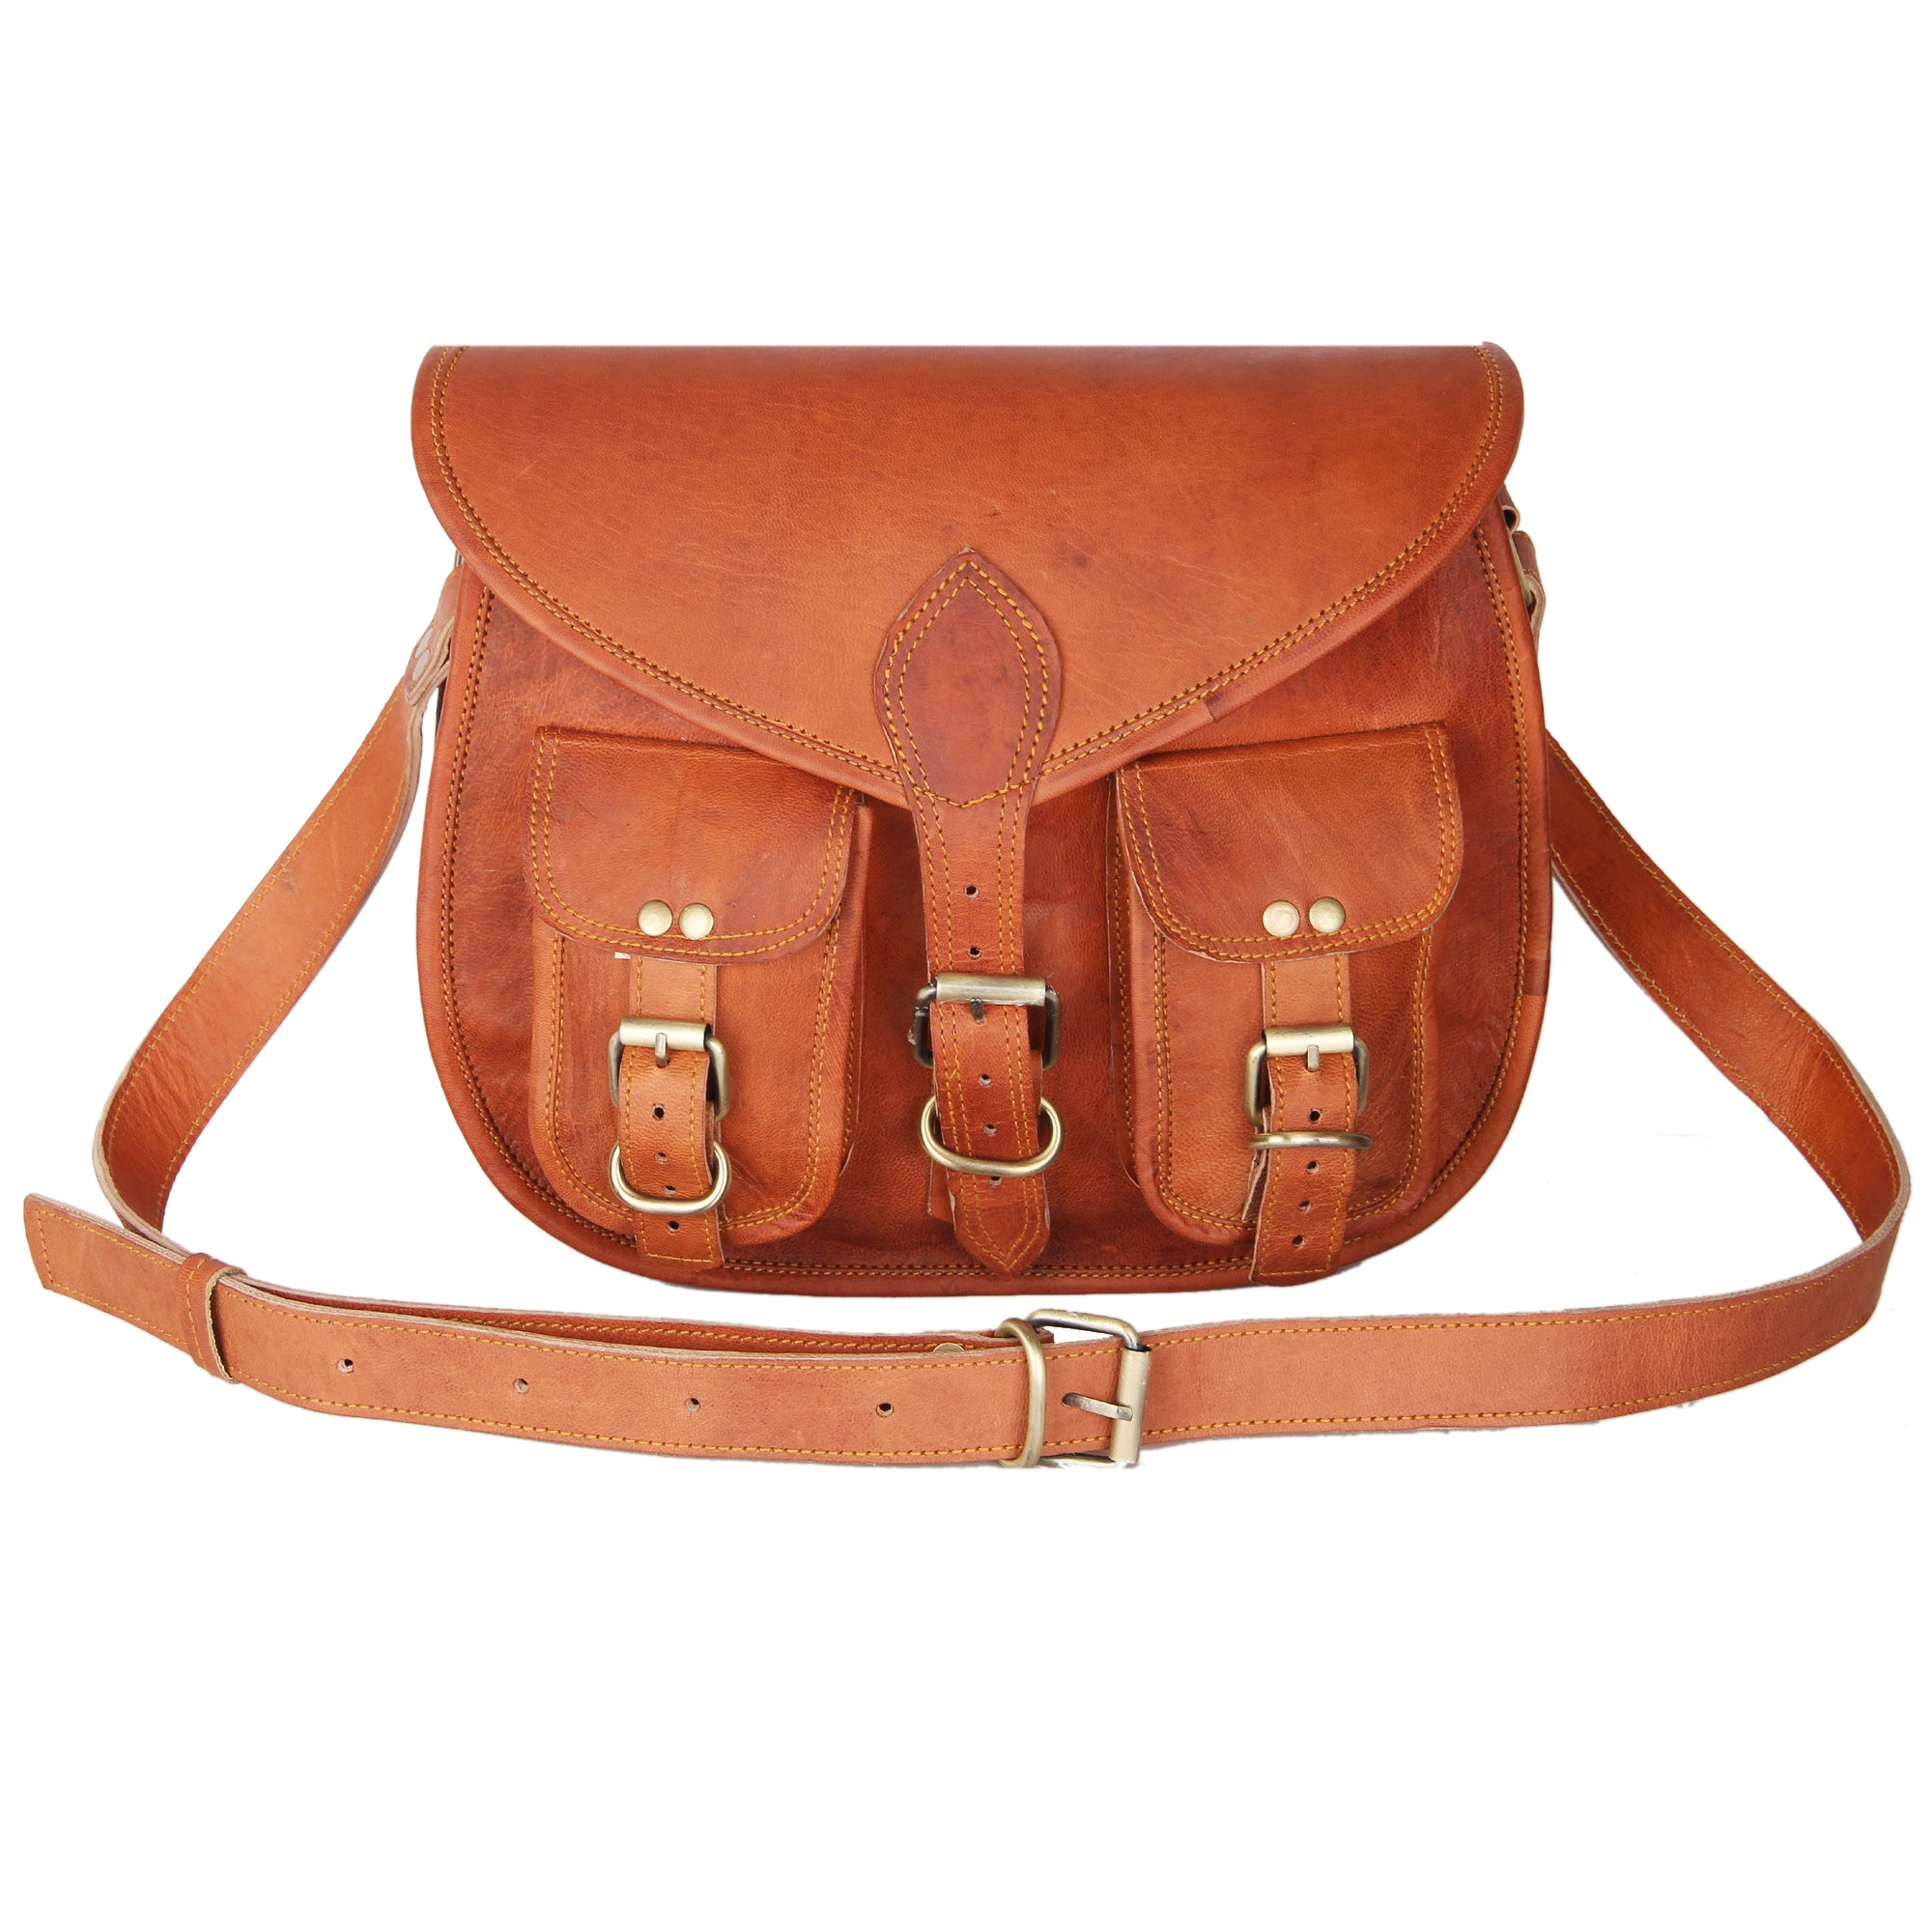 Women's Handmade Leather Boho-Gypsy Purse - Smart Green Canvas Lining and Reinforced Hand-Stitching - 3 Compartments, Plus 1 Zippered Pocket - Crossbody Purse for Business and Pleasure - 13 Inches